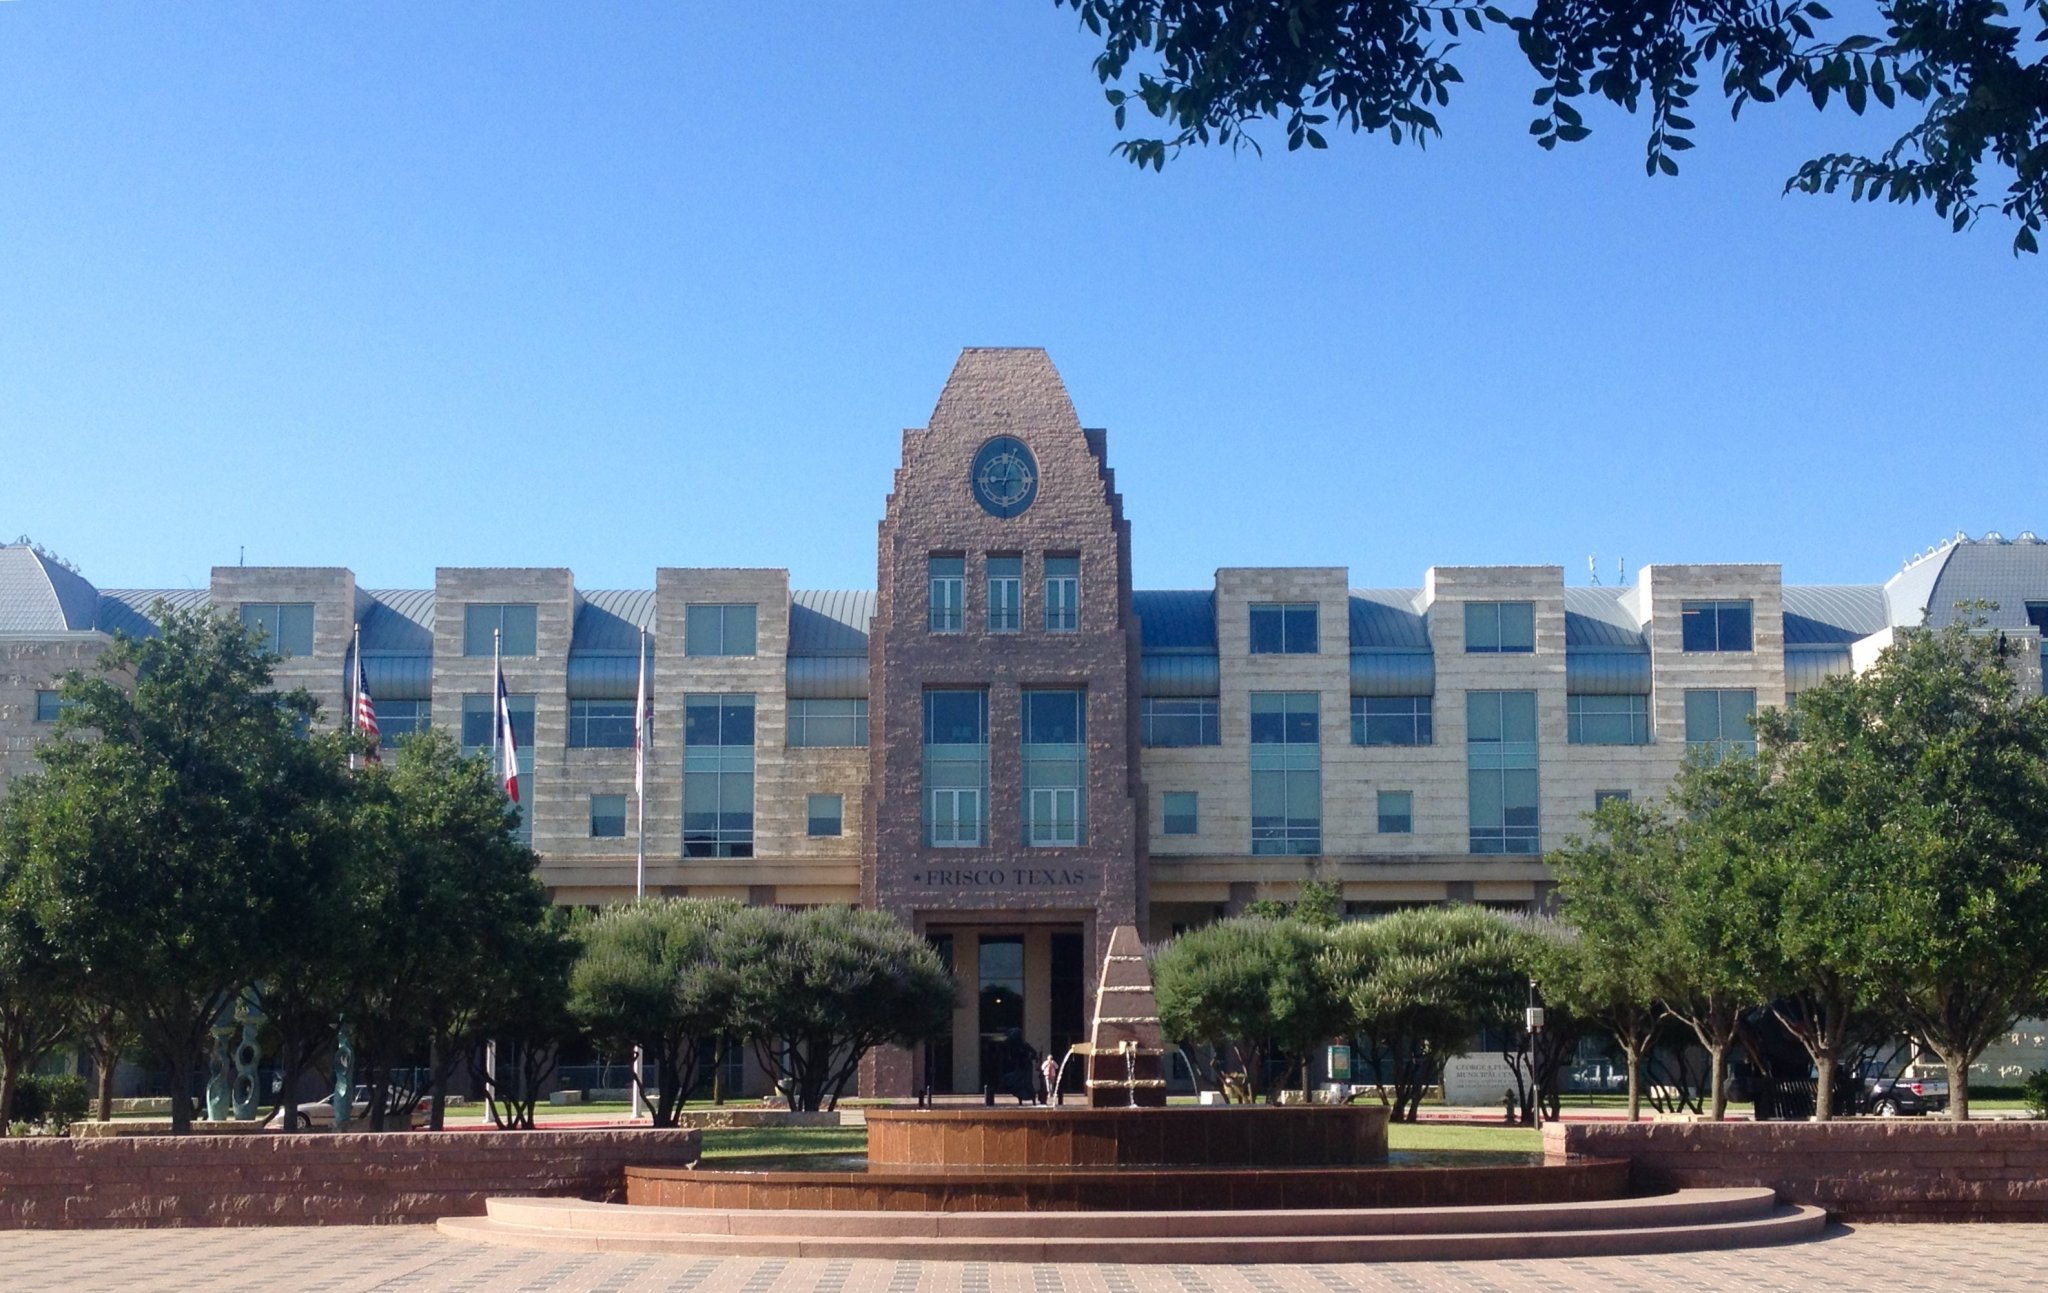 For some more family fun in Frisco, visit the Frisco library!